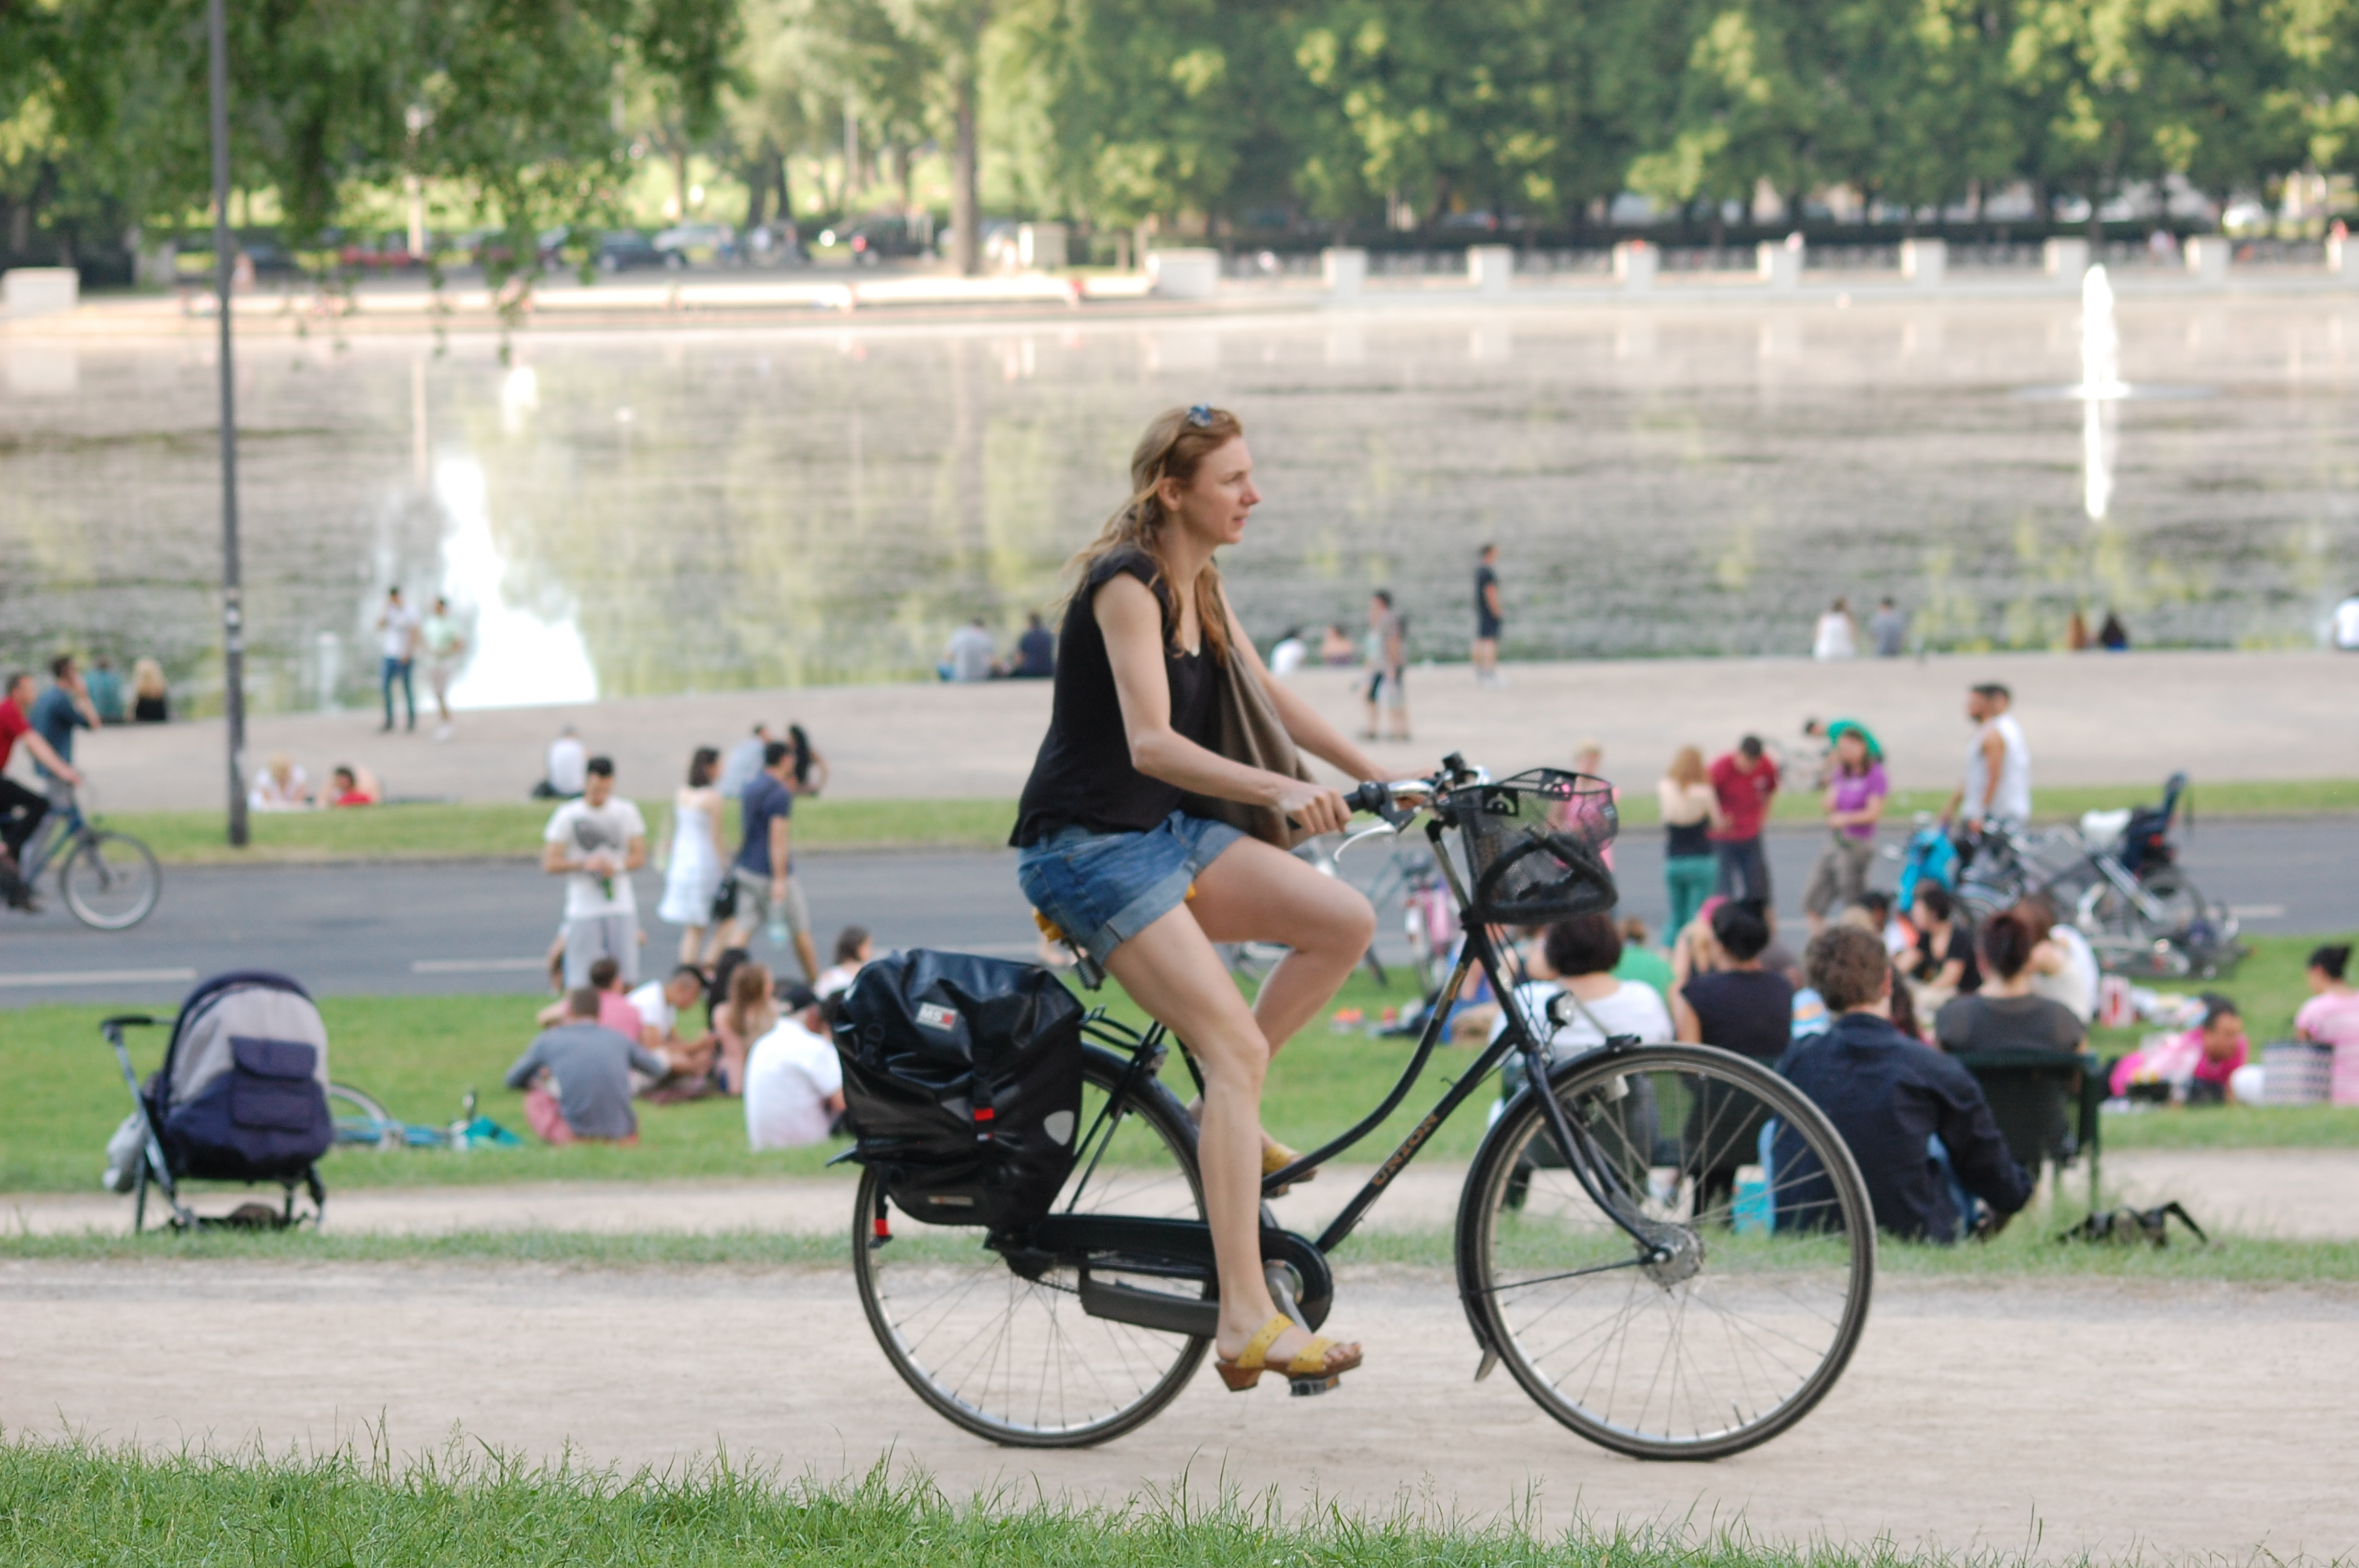 16% Cycling Modal Share,